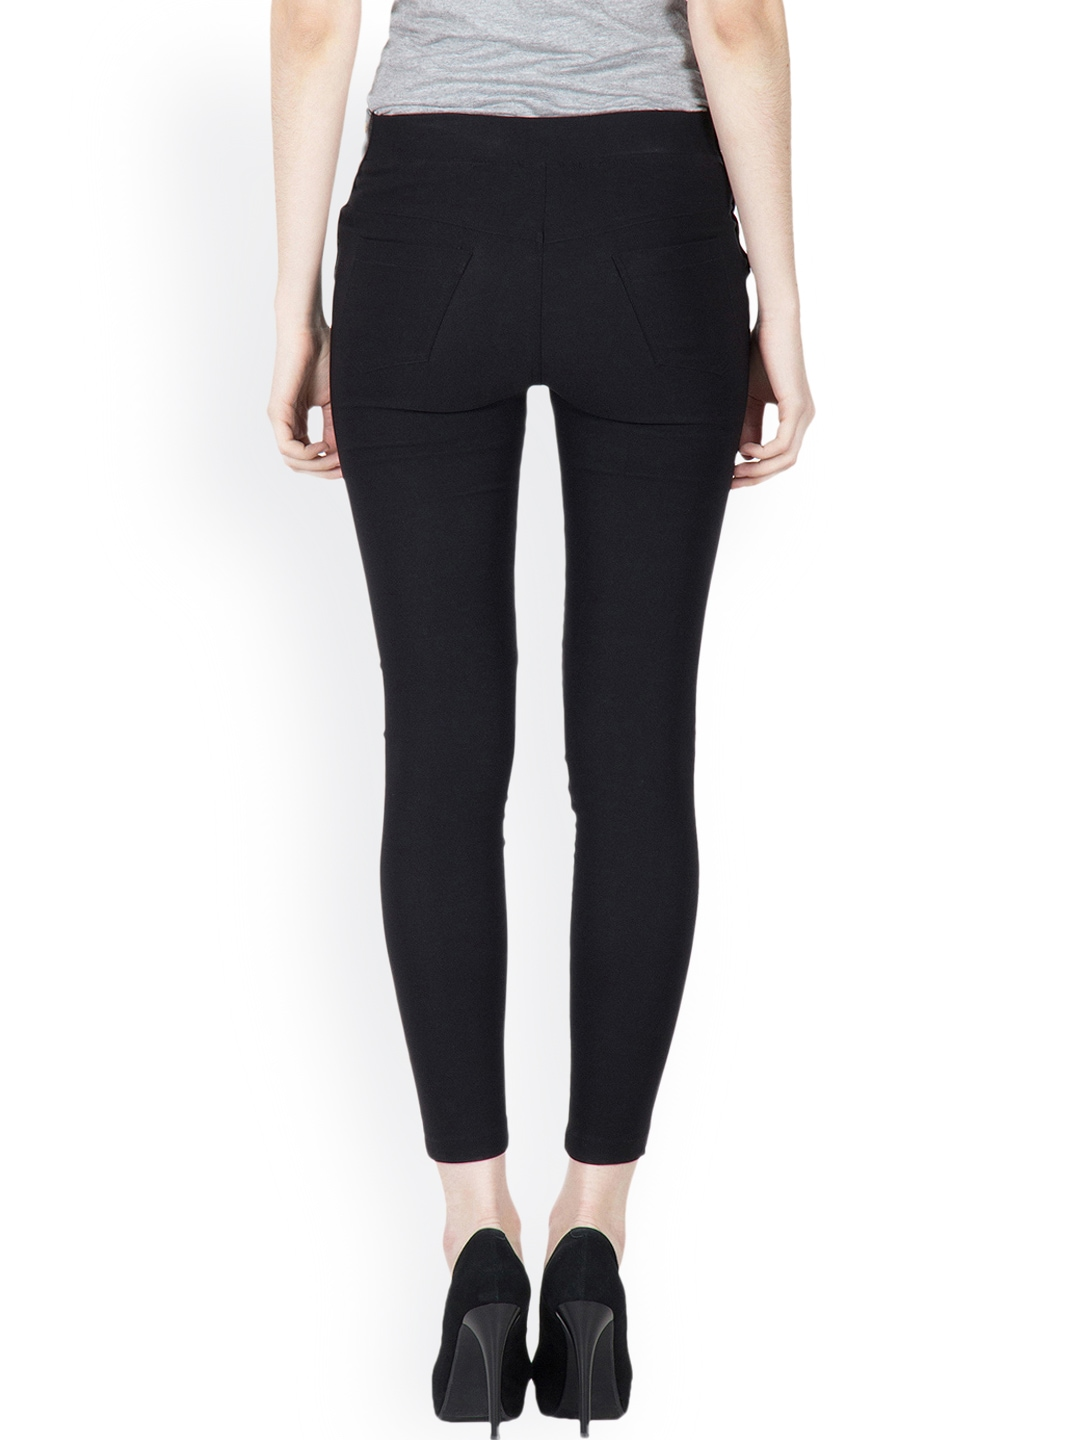 Lakshita offers online shopping for jeggings in India. Browse latest collection of casual jeggings online and buy now at very best prices.